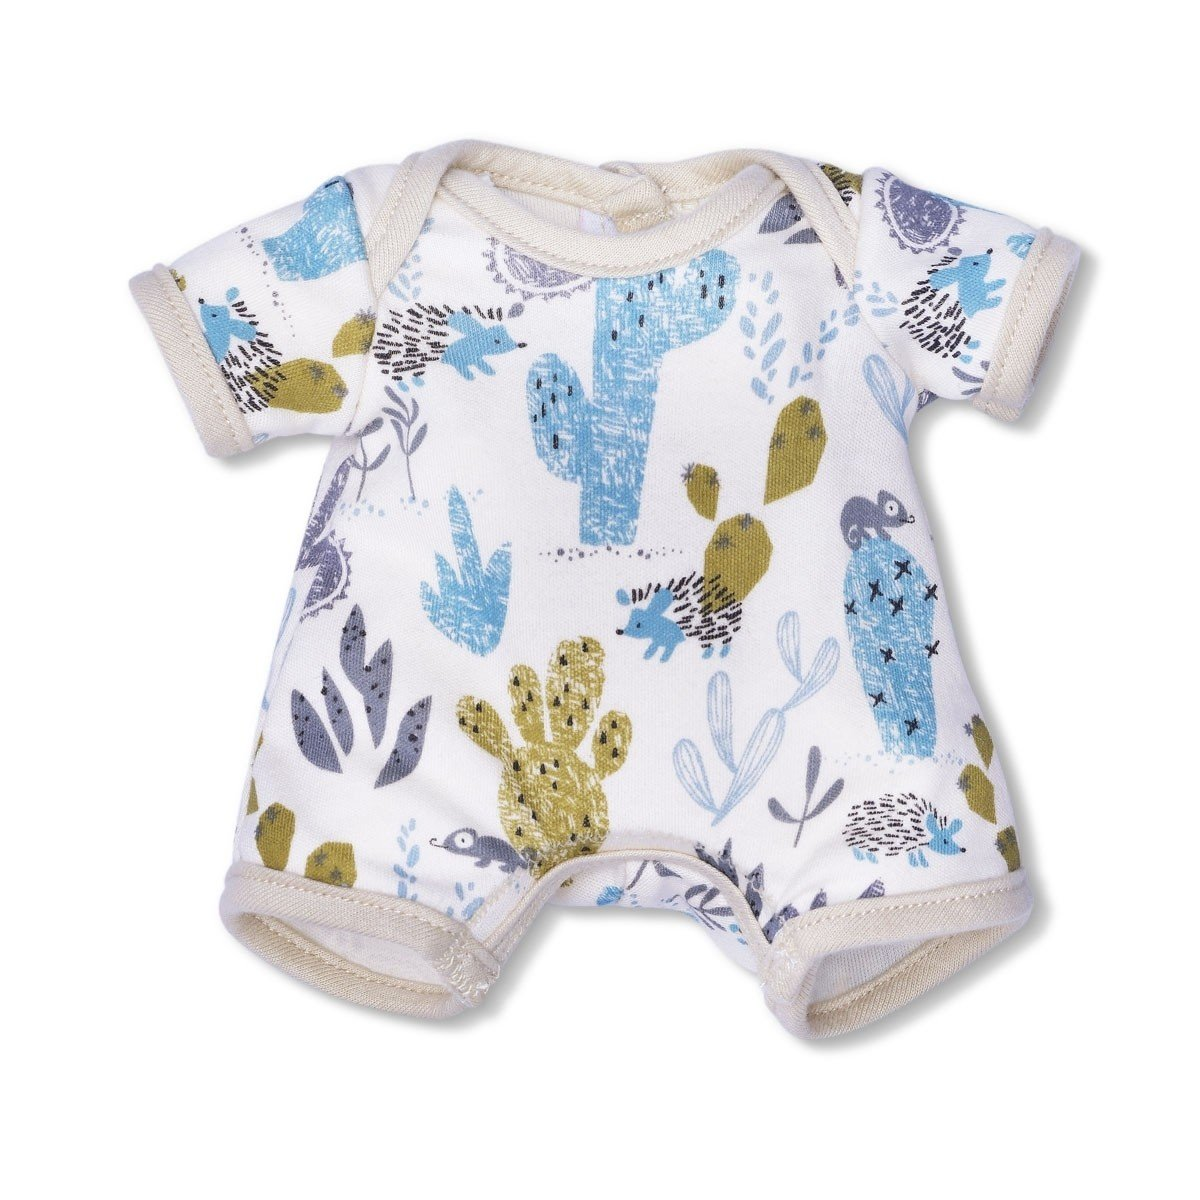 Apple Park Organic Cotton Baby Doll Apple Park Organic Dolls, Playsets & Toy Figures at Little Earth Nest Eco Shop